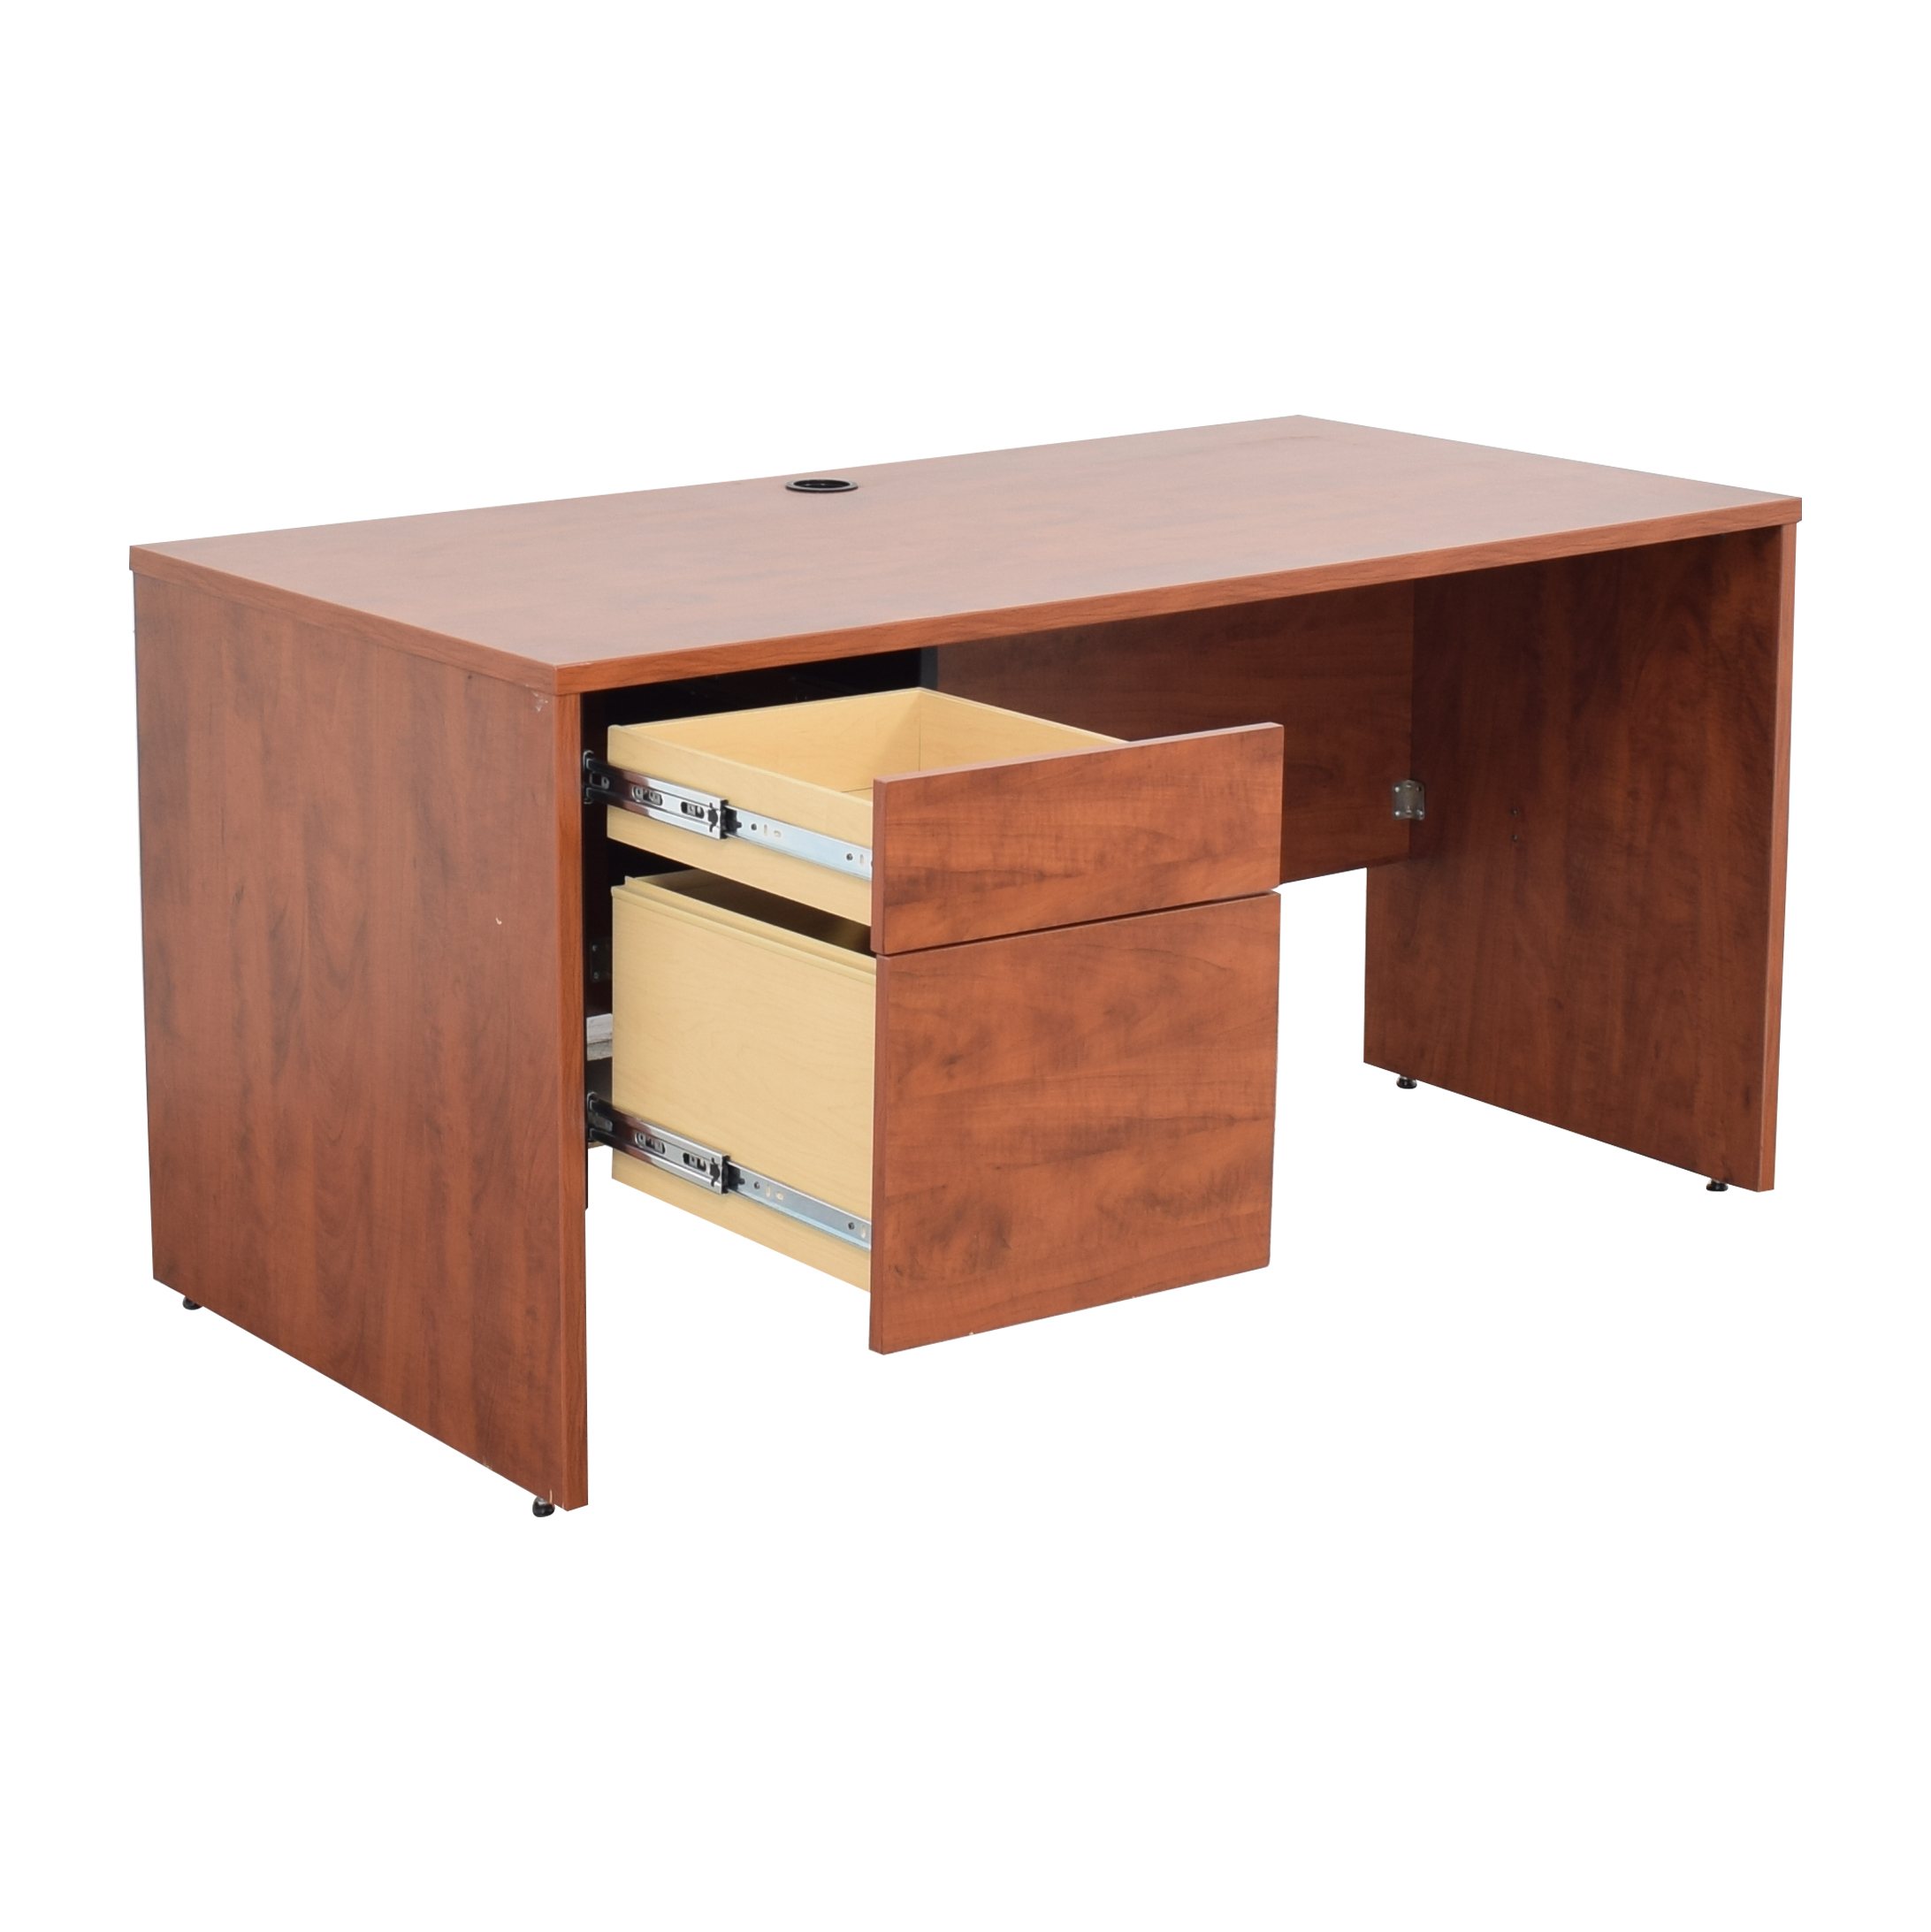 Glenwood Glenwood Desk with Two Drawers on sale